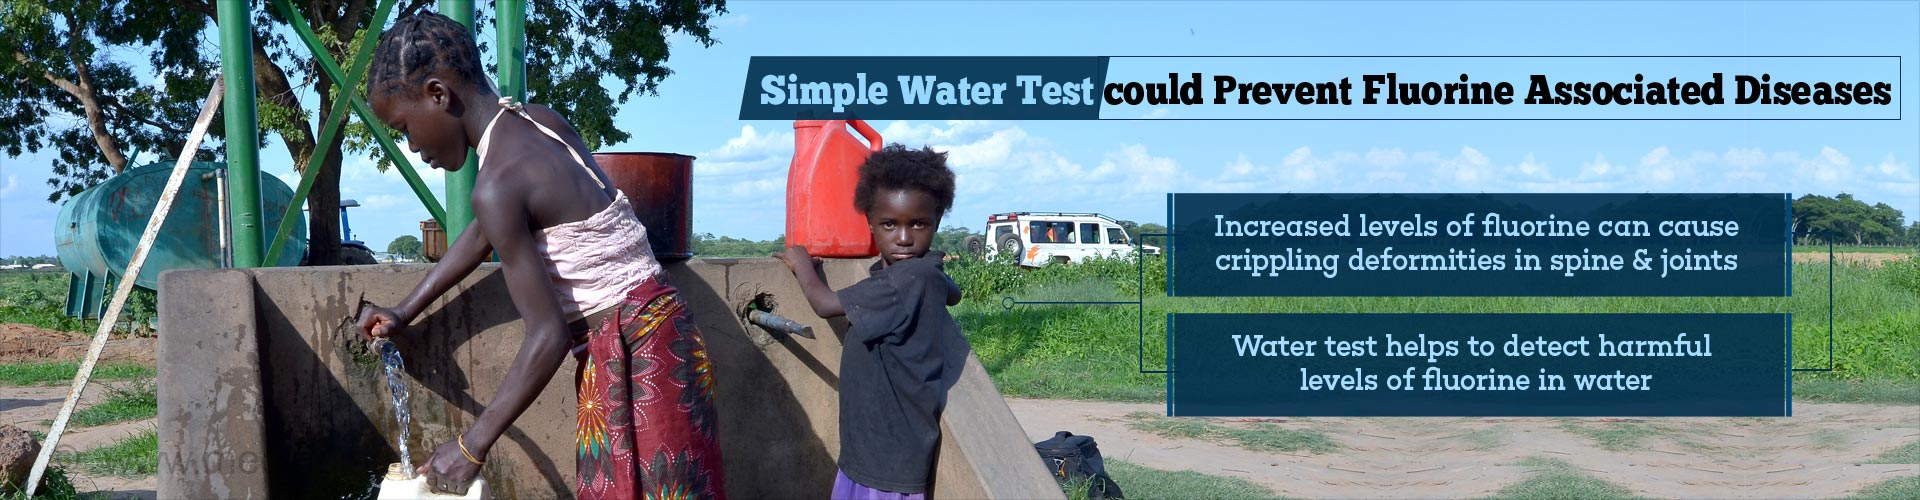 Simple Water Test can Prevent Crippling Deformities